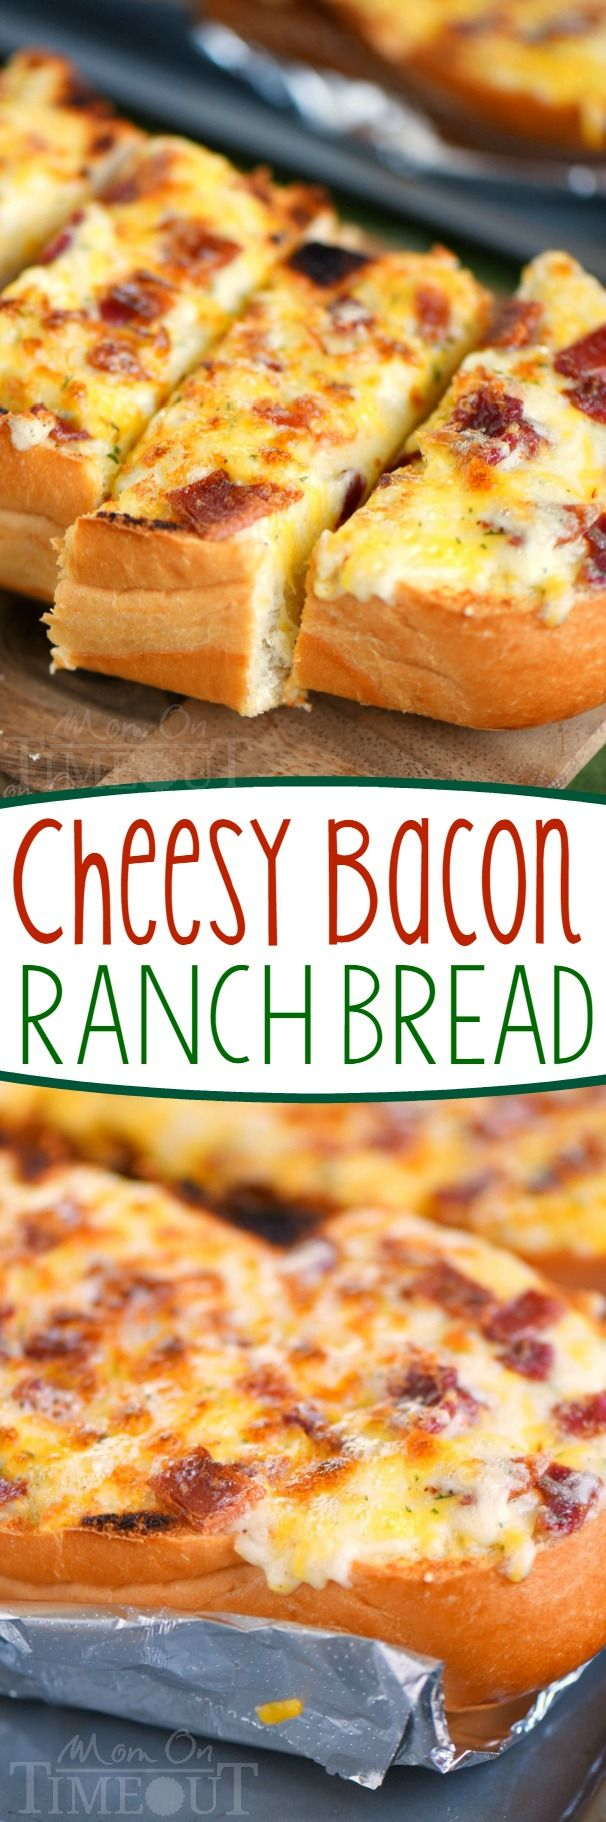 I've put all your favorites together in this fantastic and easy Cheesy Bacon Ranch Bread! Make it in the oven or on grill - it's your choice! A tasty addition to game day or any meal!: